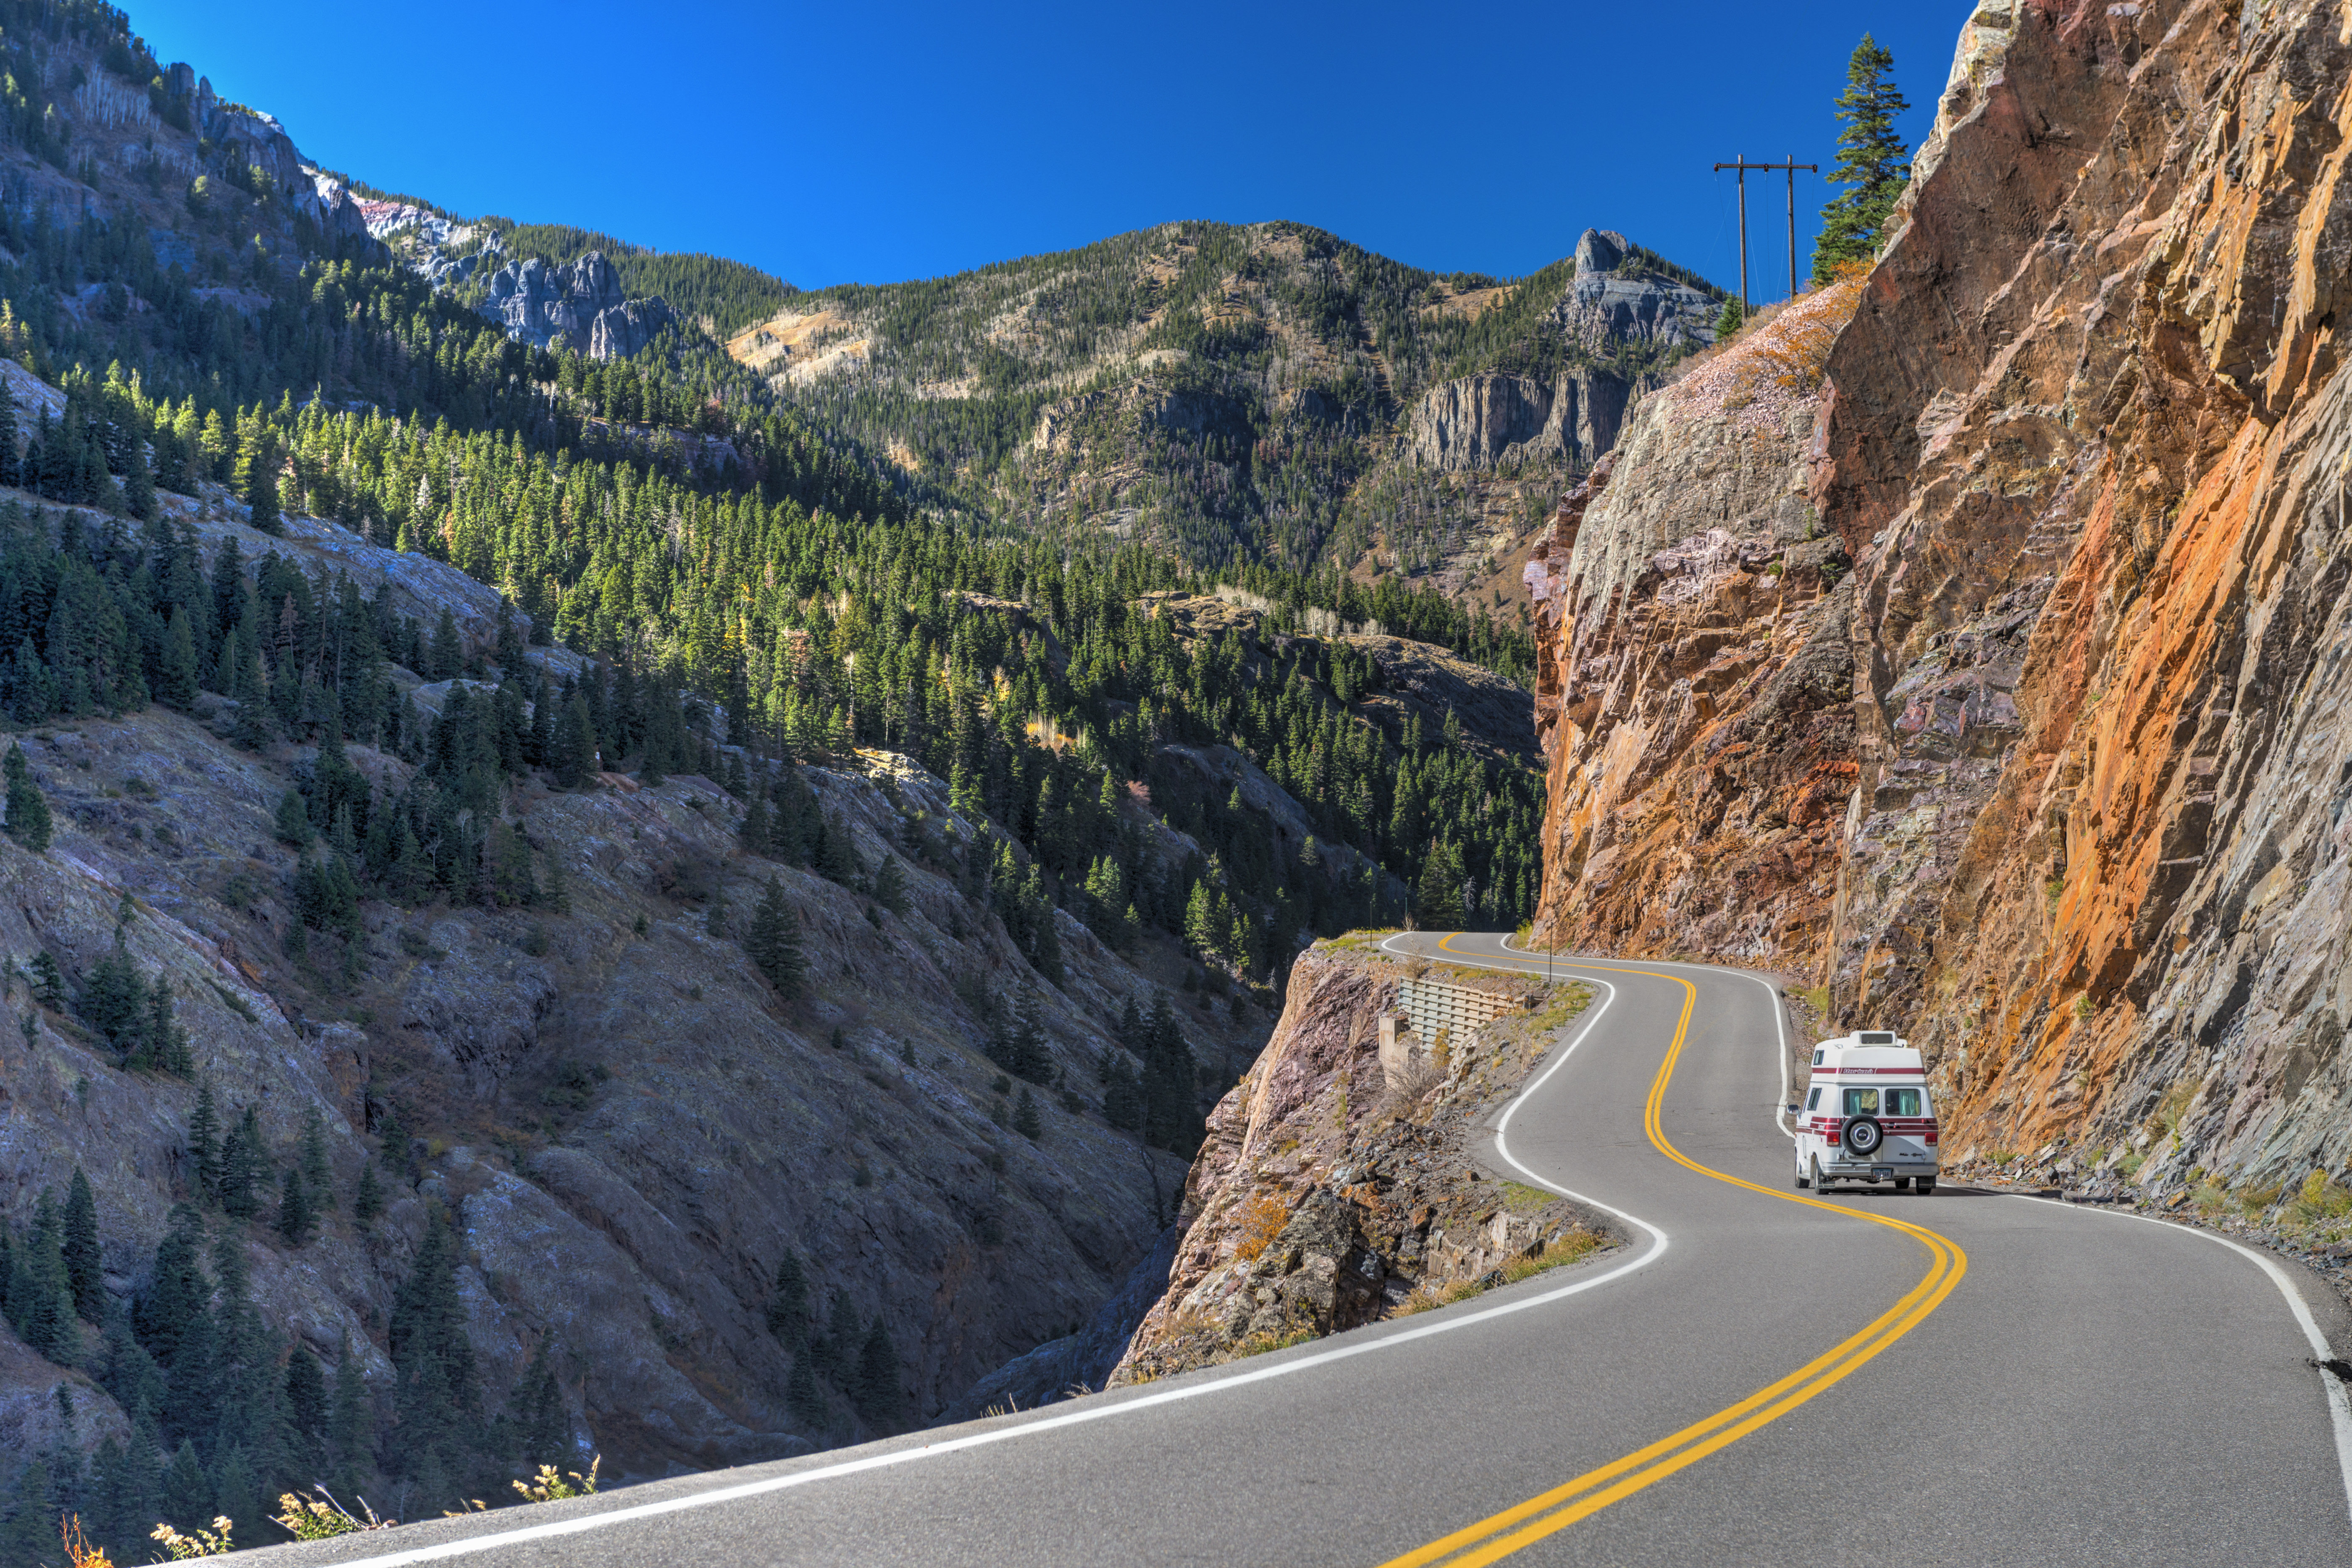 USA, Colorado, between Silverton and Ouray, The Million Dollar Highway part of the San Juan Skyway Scenic Byway